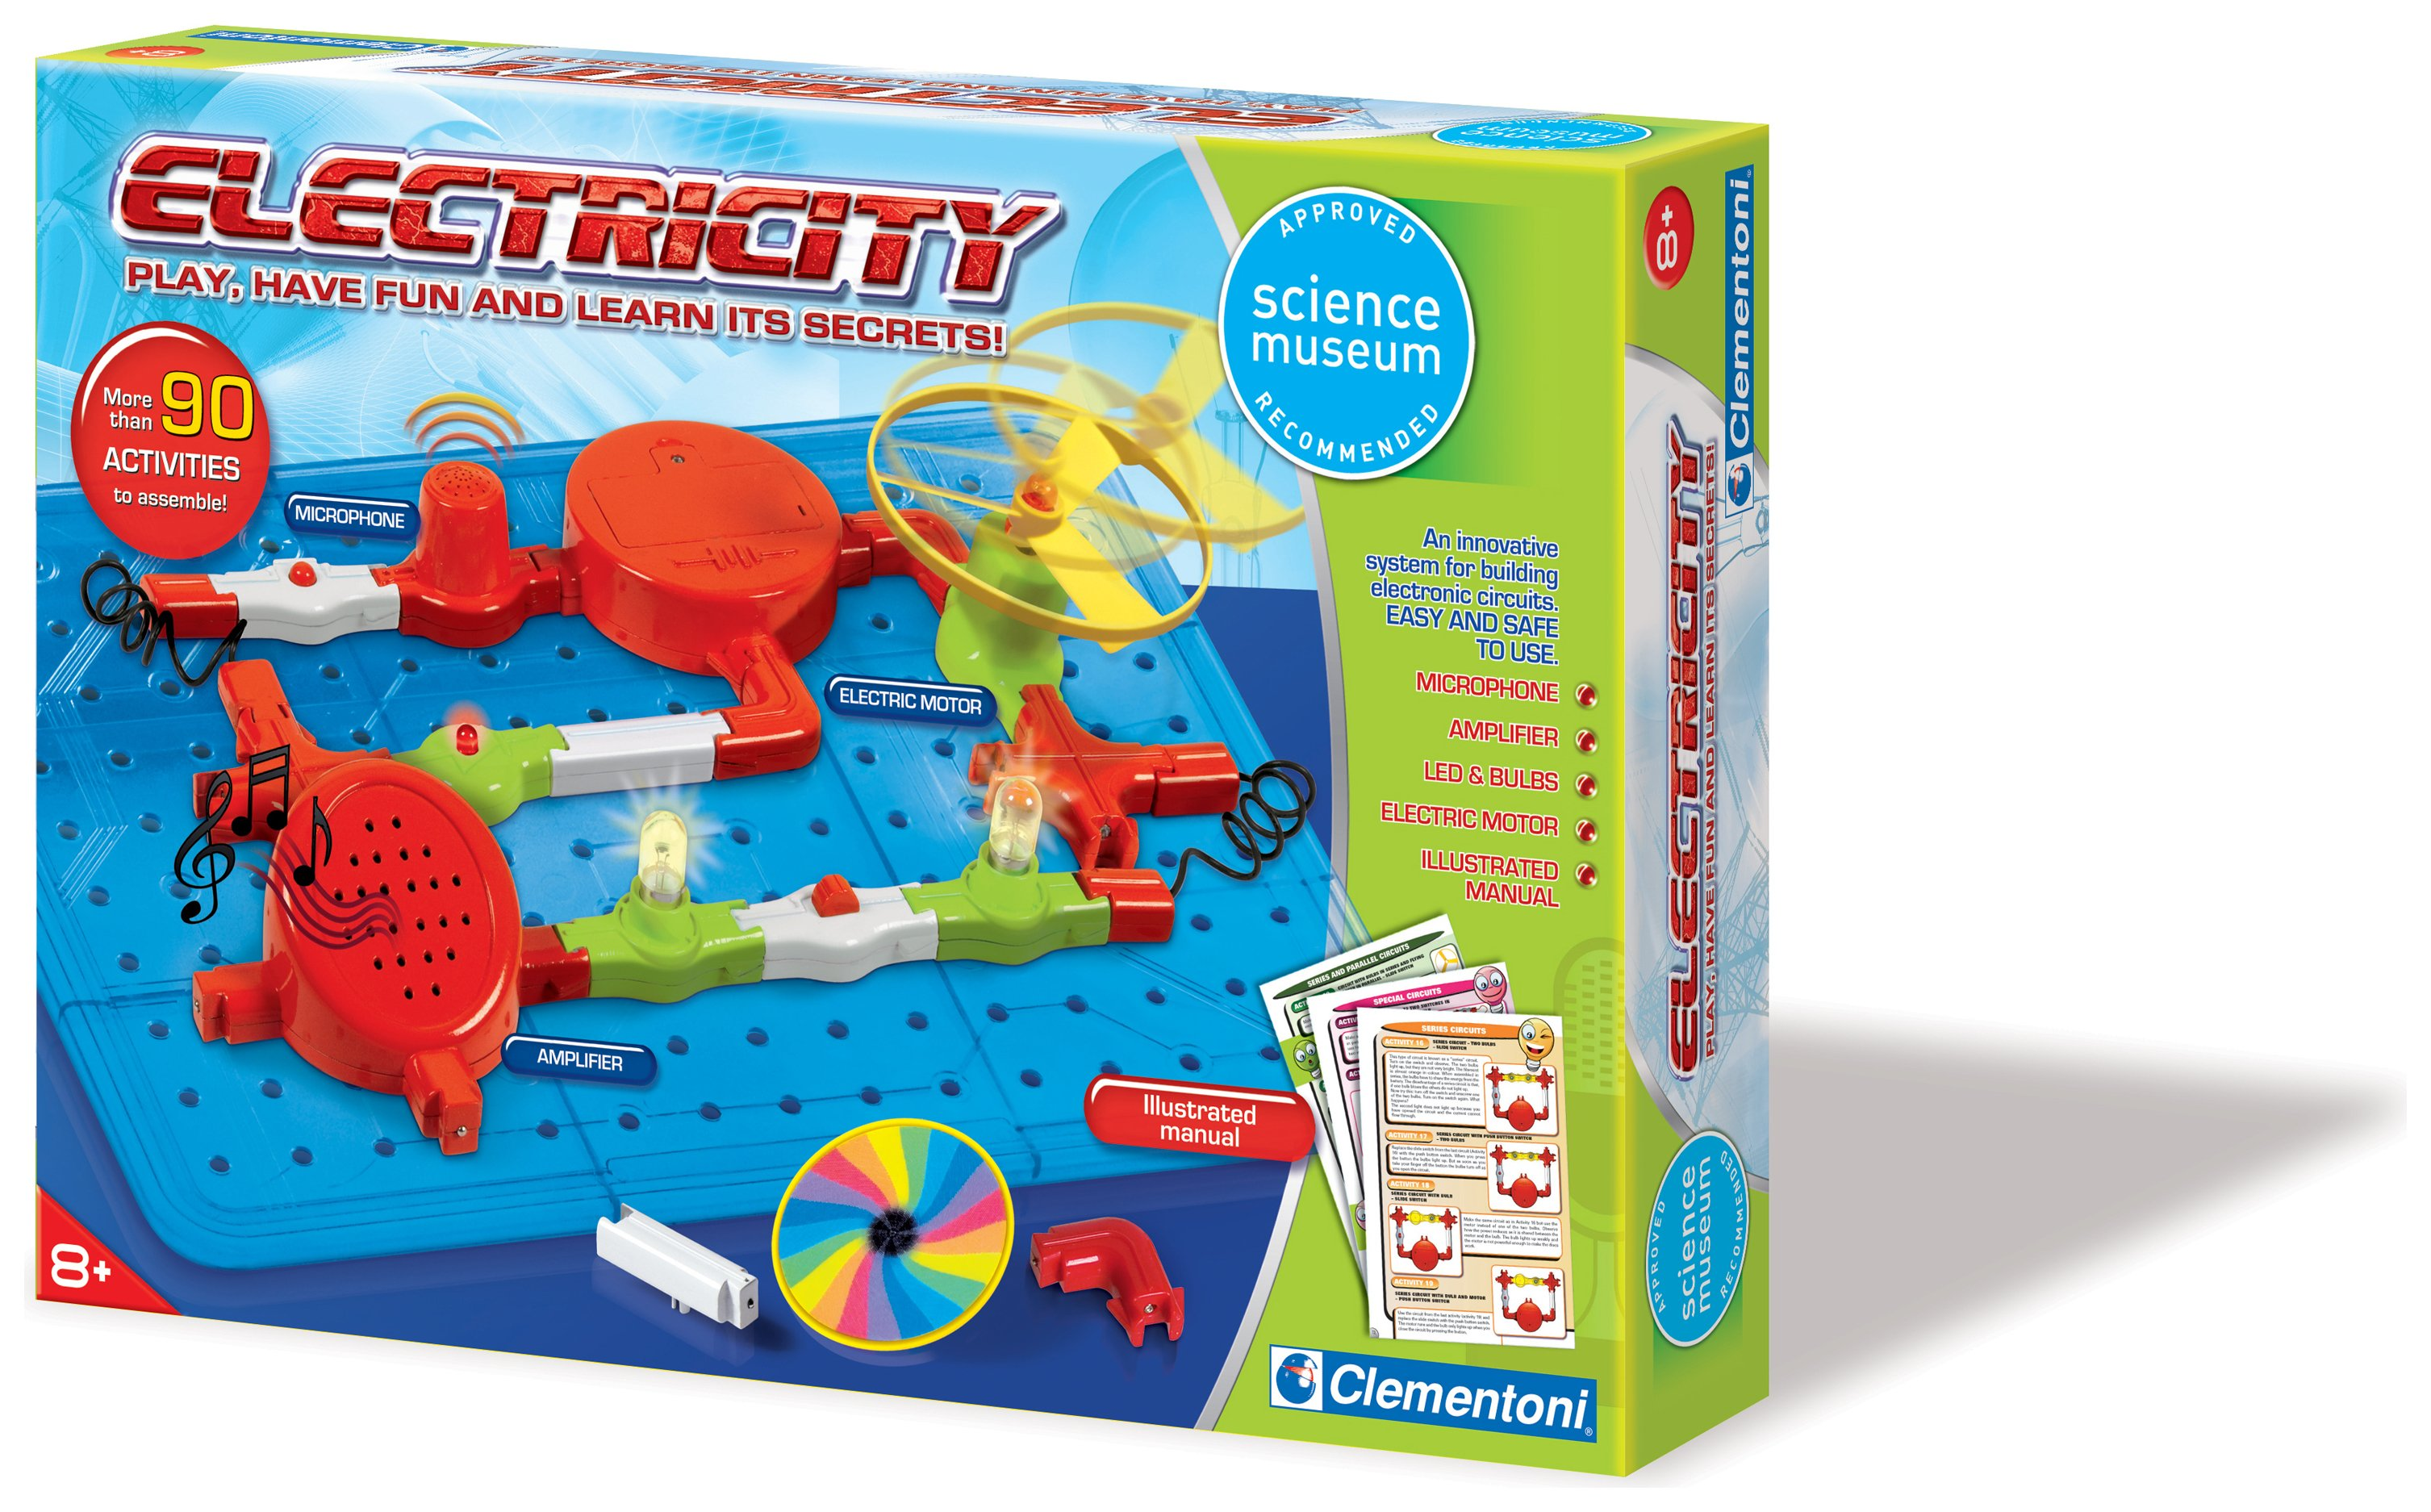 Image of Clementoni Science Museum Electricity Kit.